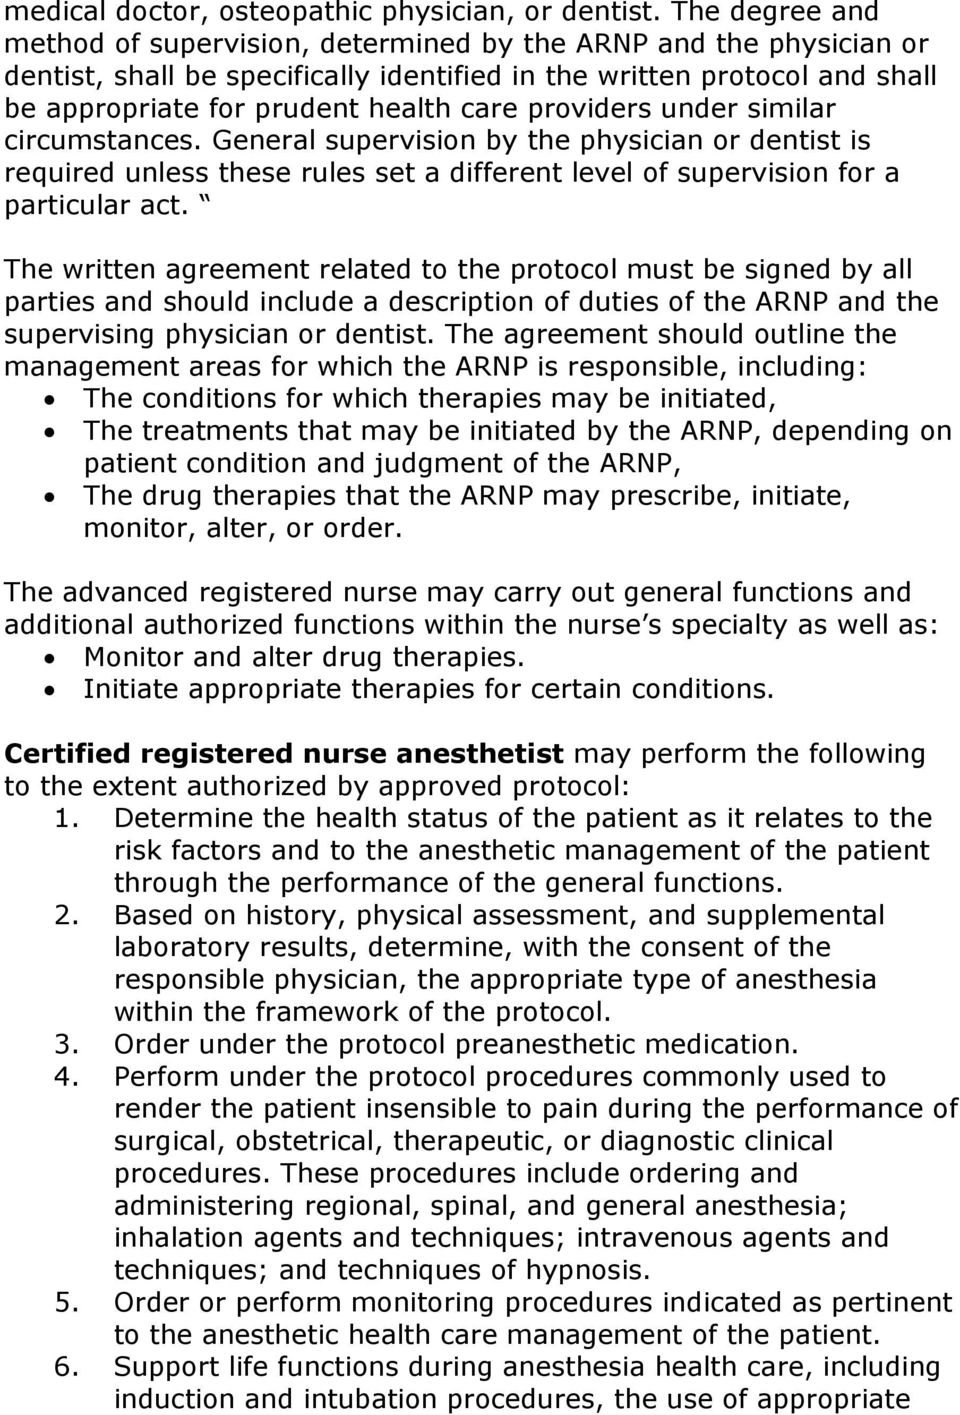 providers under similar circumstances. General supervision by the physician or dentist is required unless these rules set a different level of supervision for a particular act.